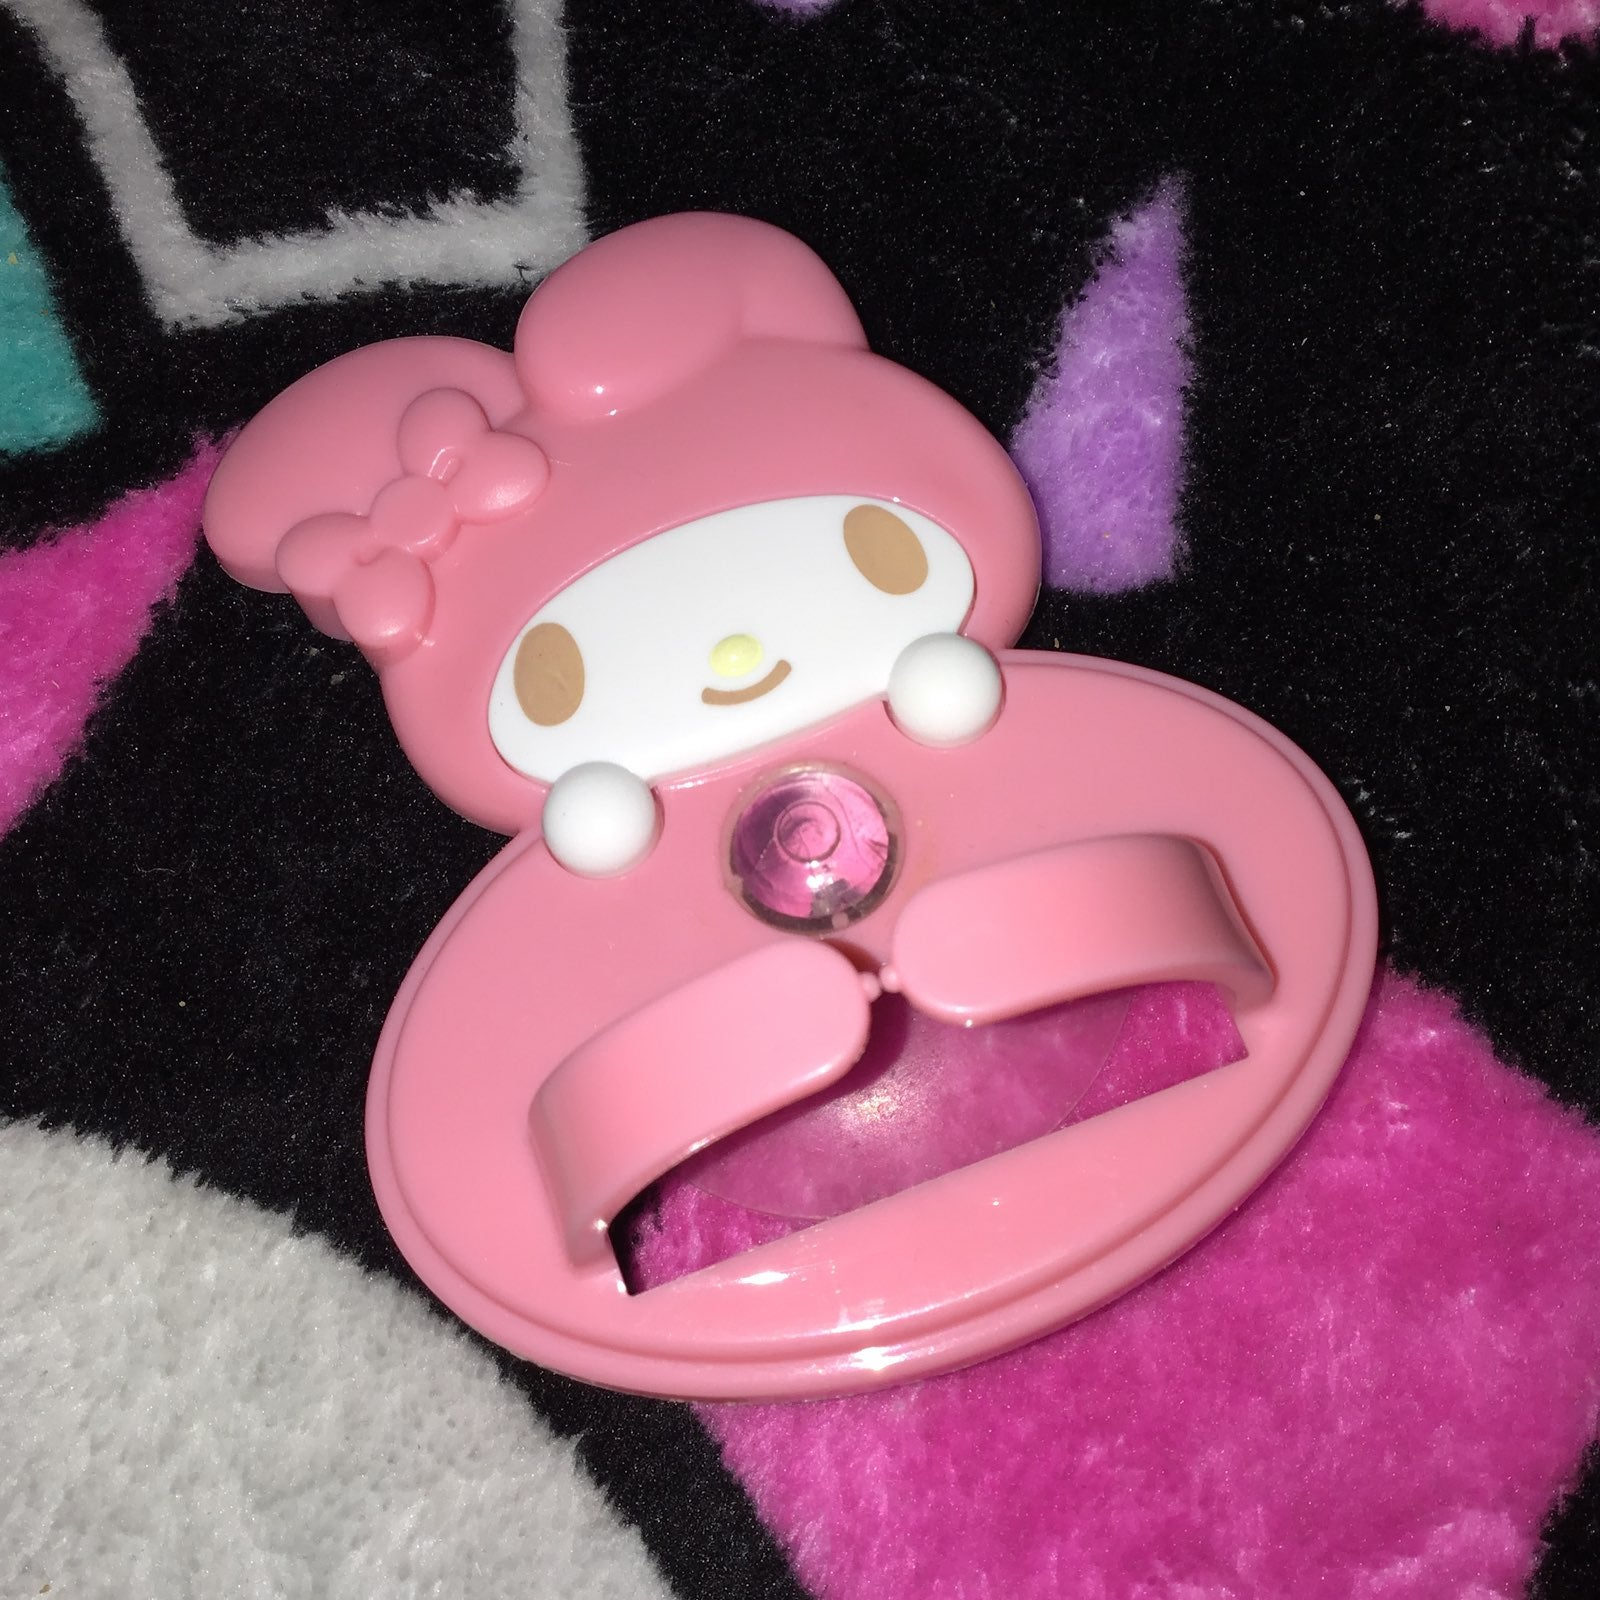 Sanrio my melody rubber band holder